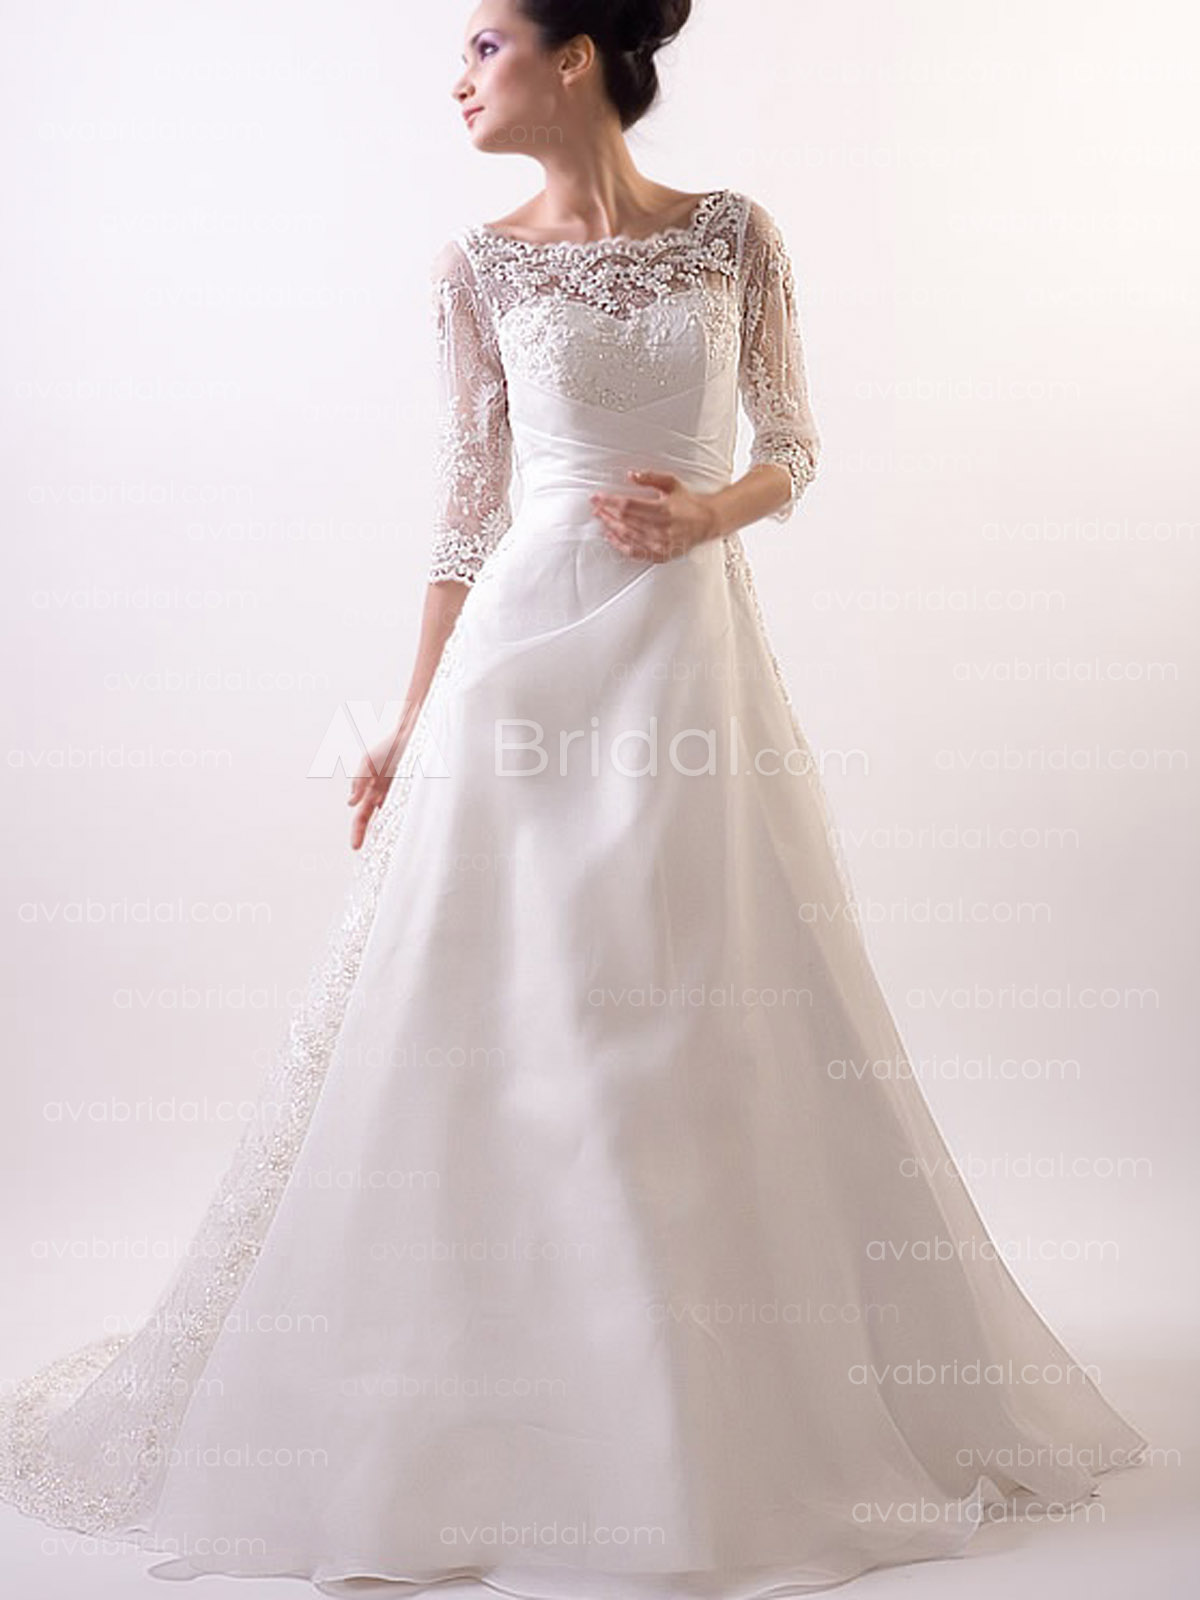 Vintage Wedding Gown - Dianna - Front